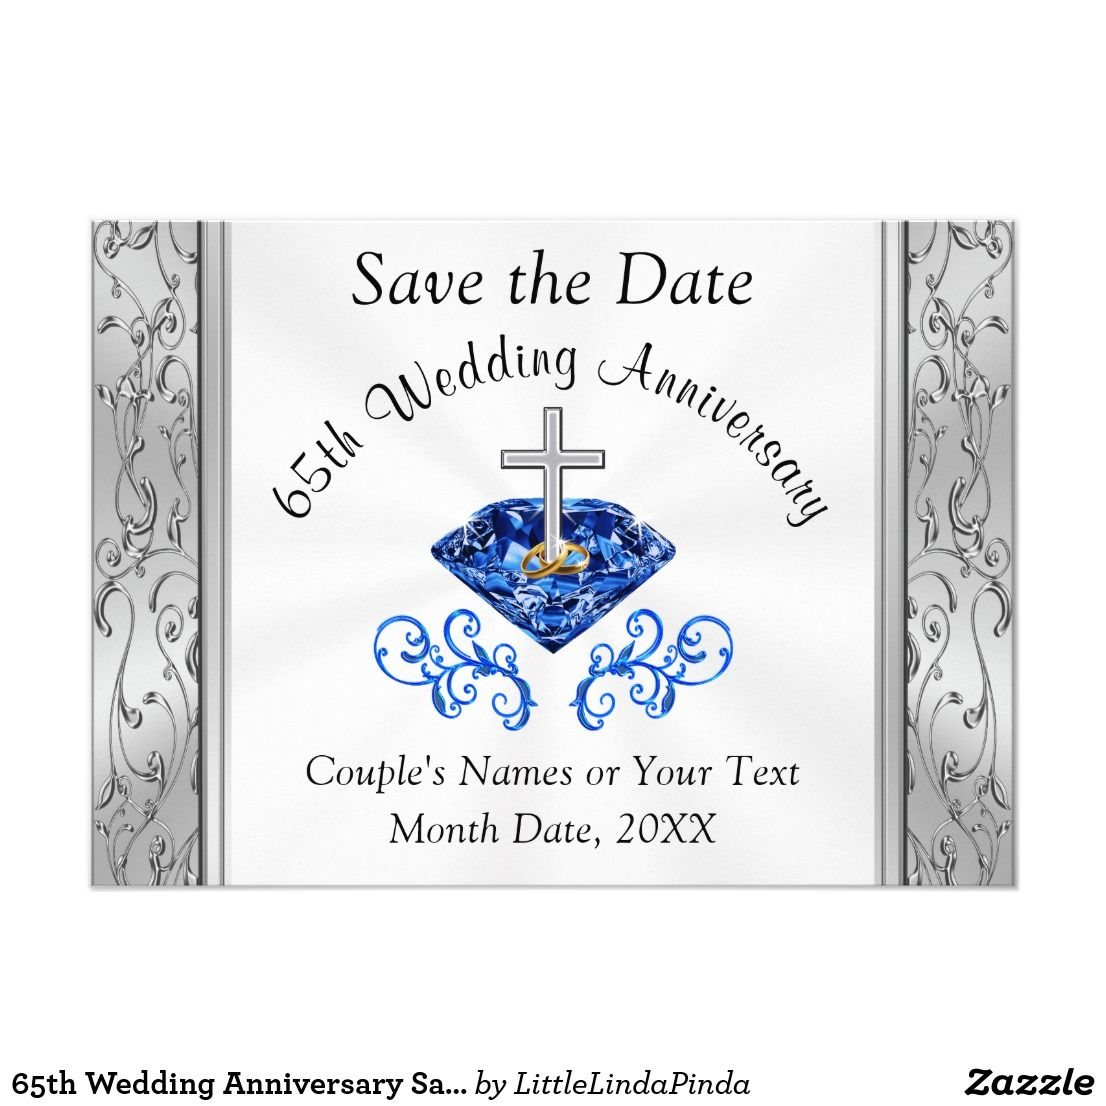 65th Wedding Anniversary Save the Date Cards in 2020